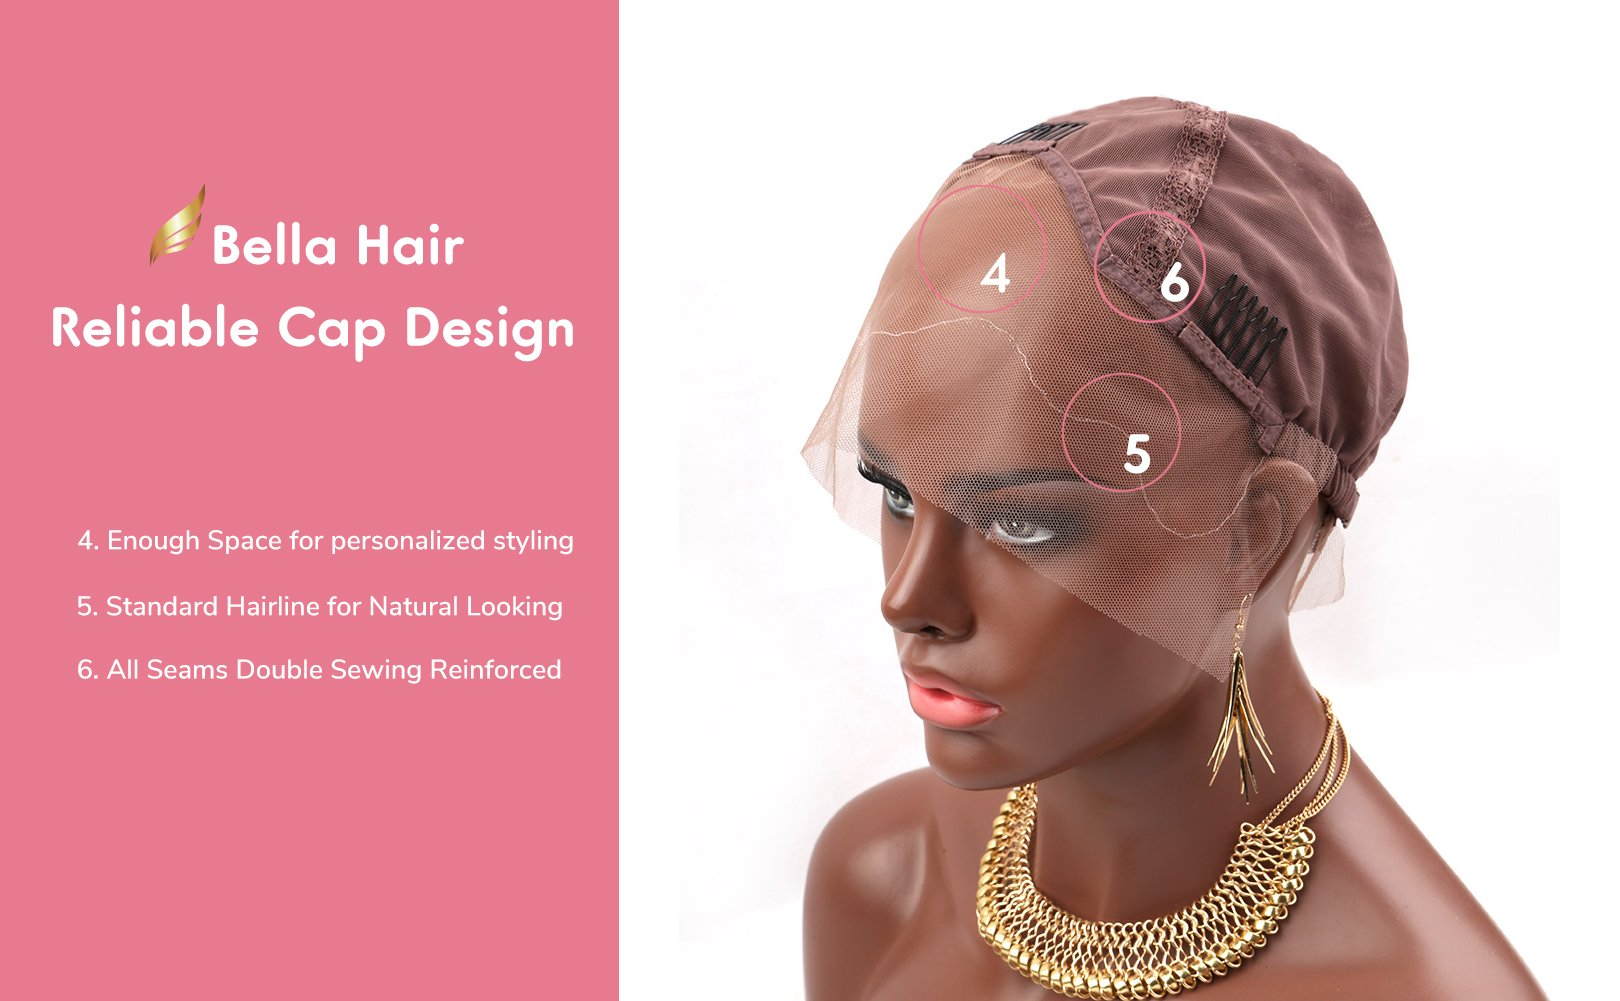 [Upgraded] Bella Hair Breathable Lace Front Wig Cap for DIY Making Wigs with Adjustable Straps and Combs, Light Brown Medium Size by Bella Hair (Image #5)